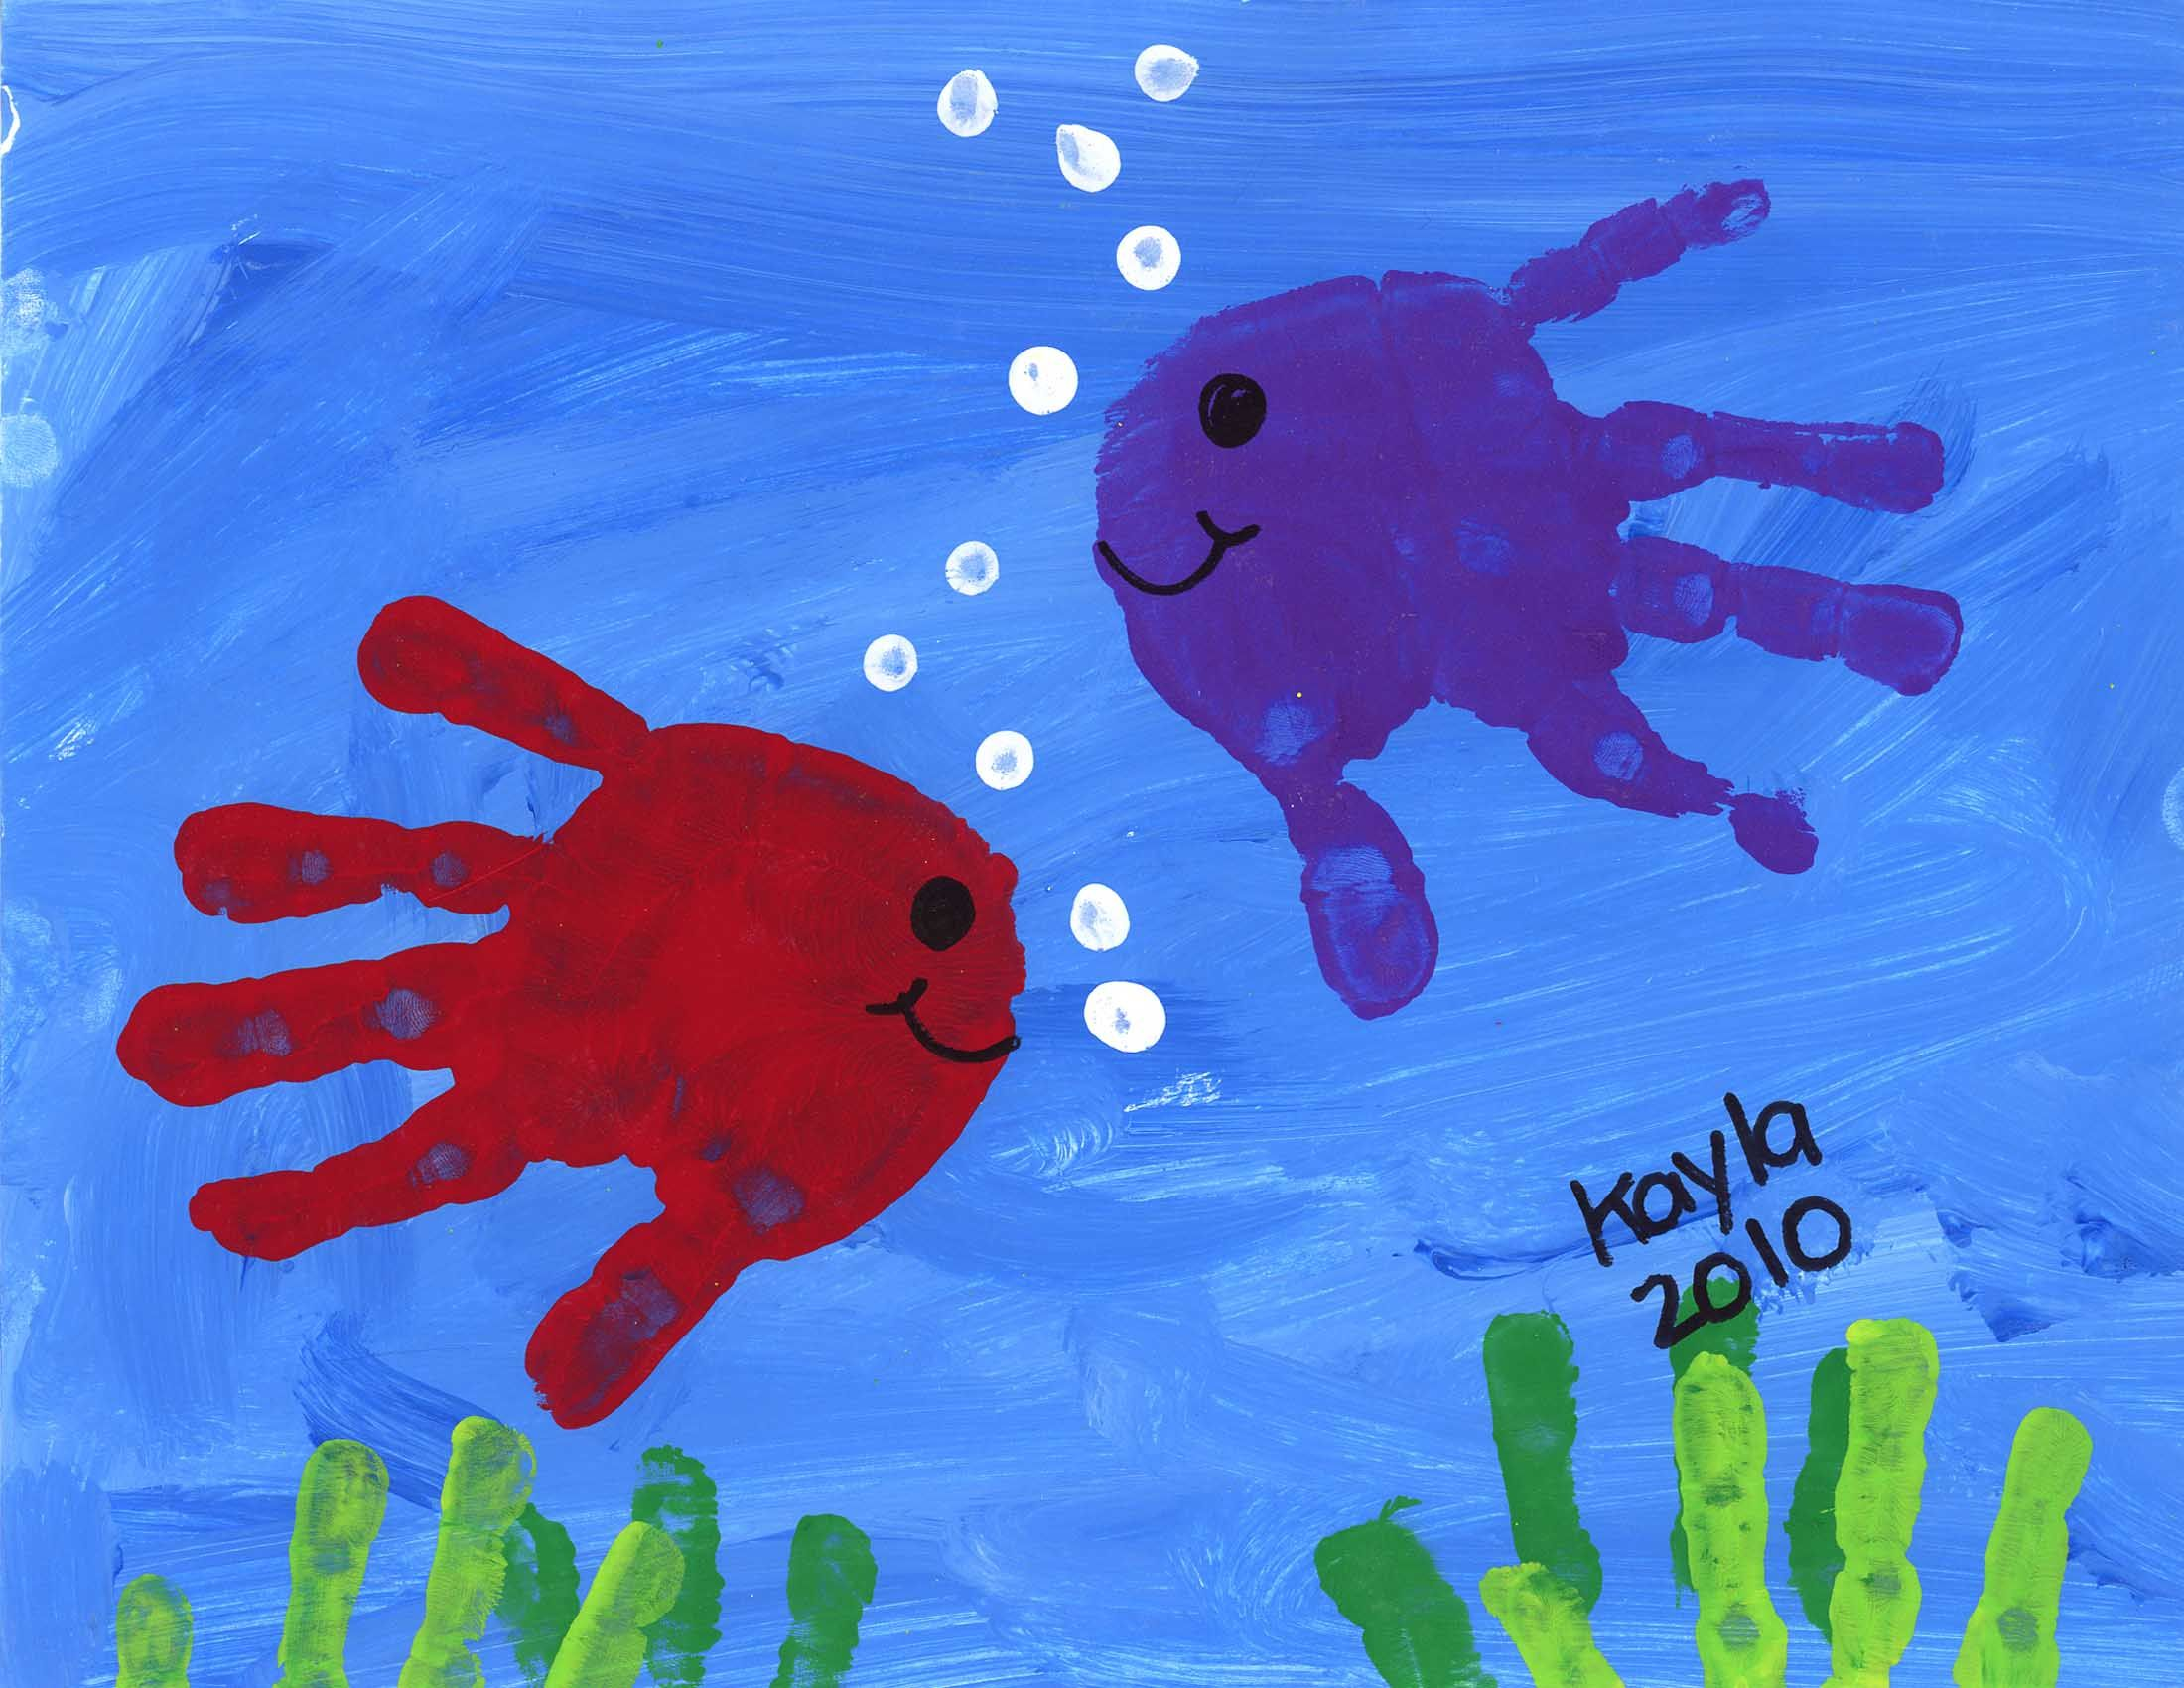 Hand Print Fish Best Selling Artwork Pinterest